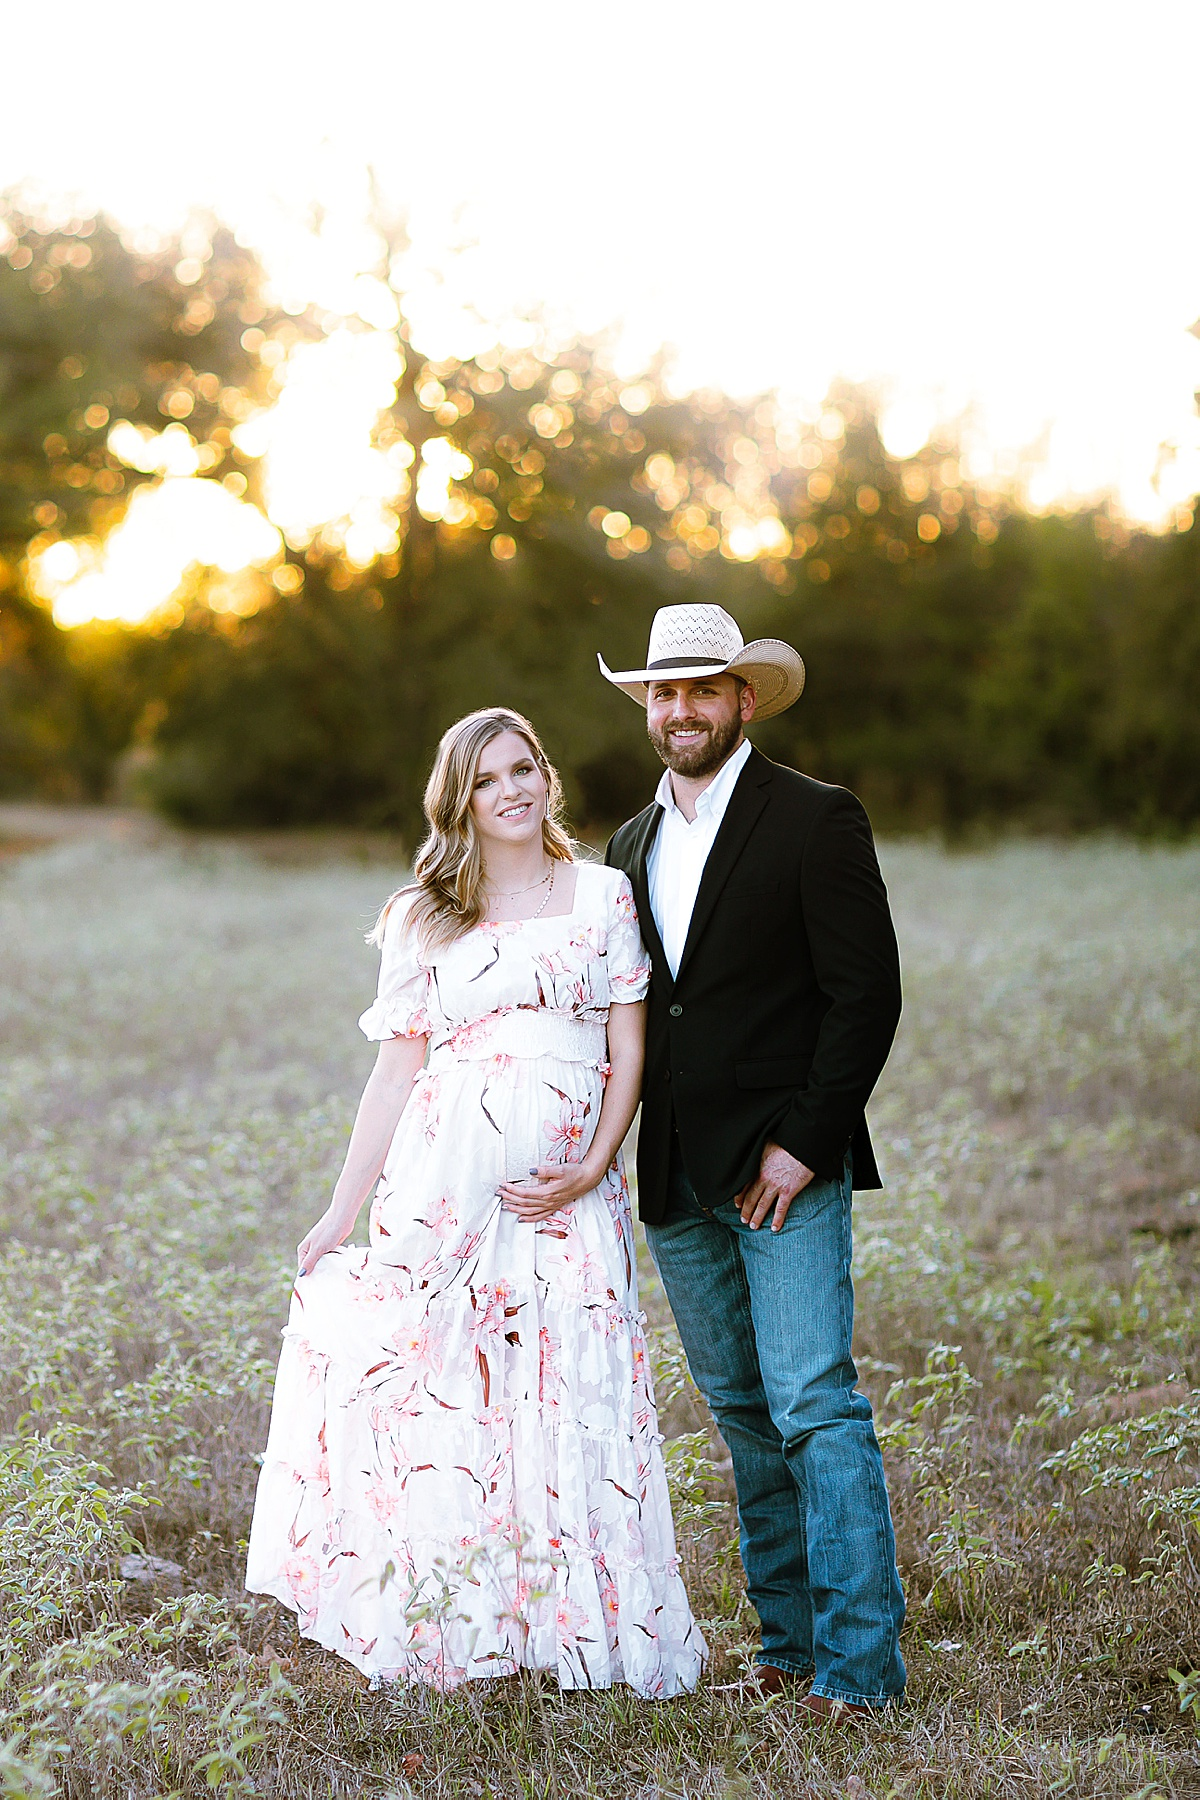 maternity-photo-session-lavernia-texas-carly-barton-photography_0038.jpg